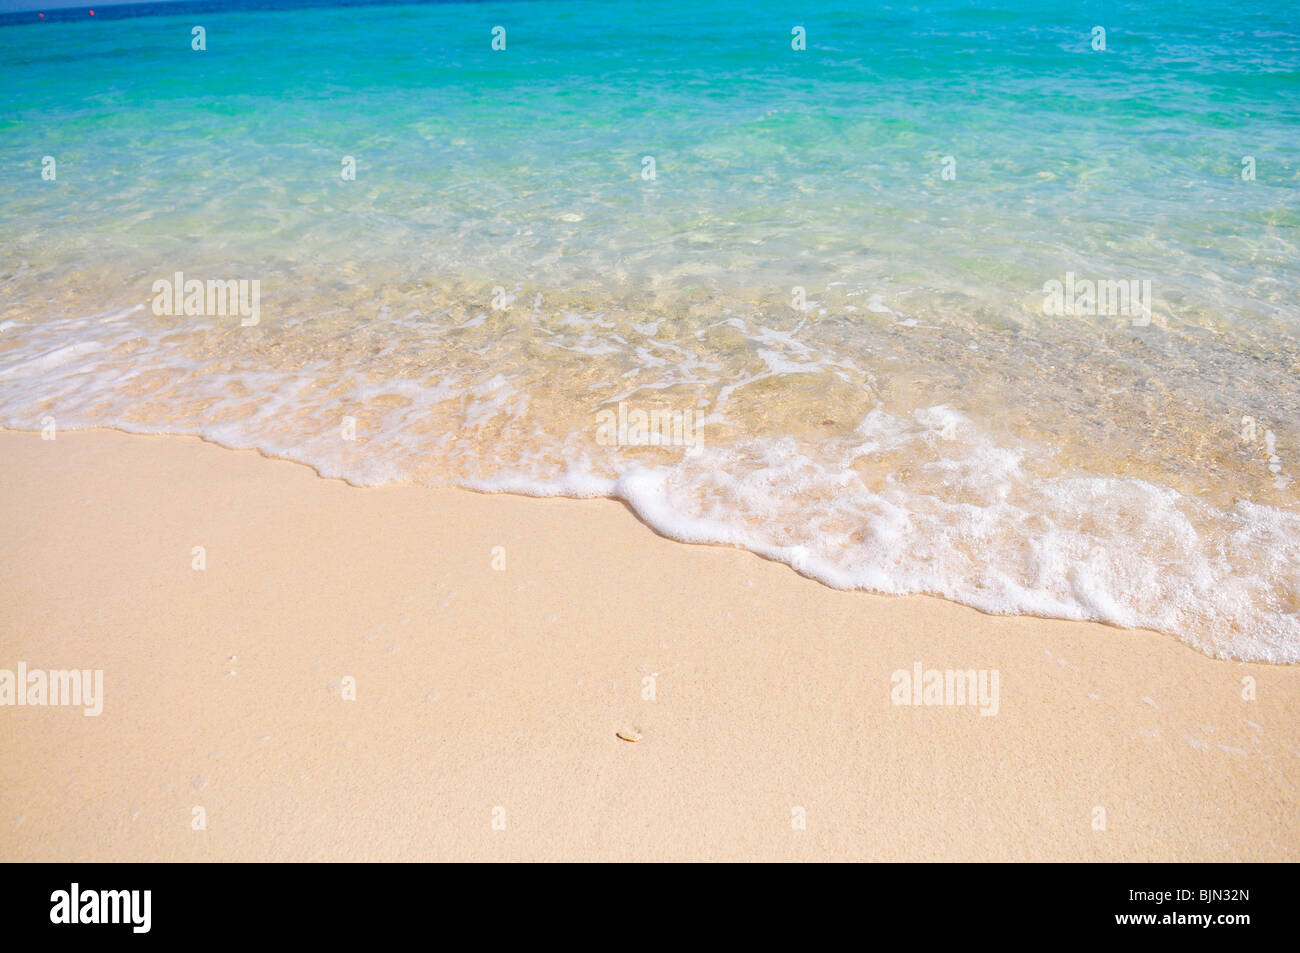 Tropical beach with white coral sand and calm wave - Stock Image